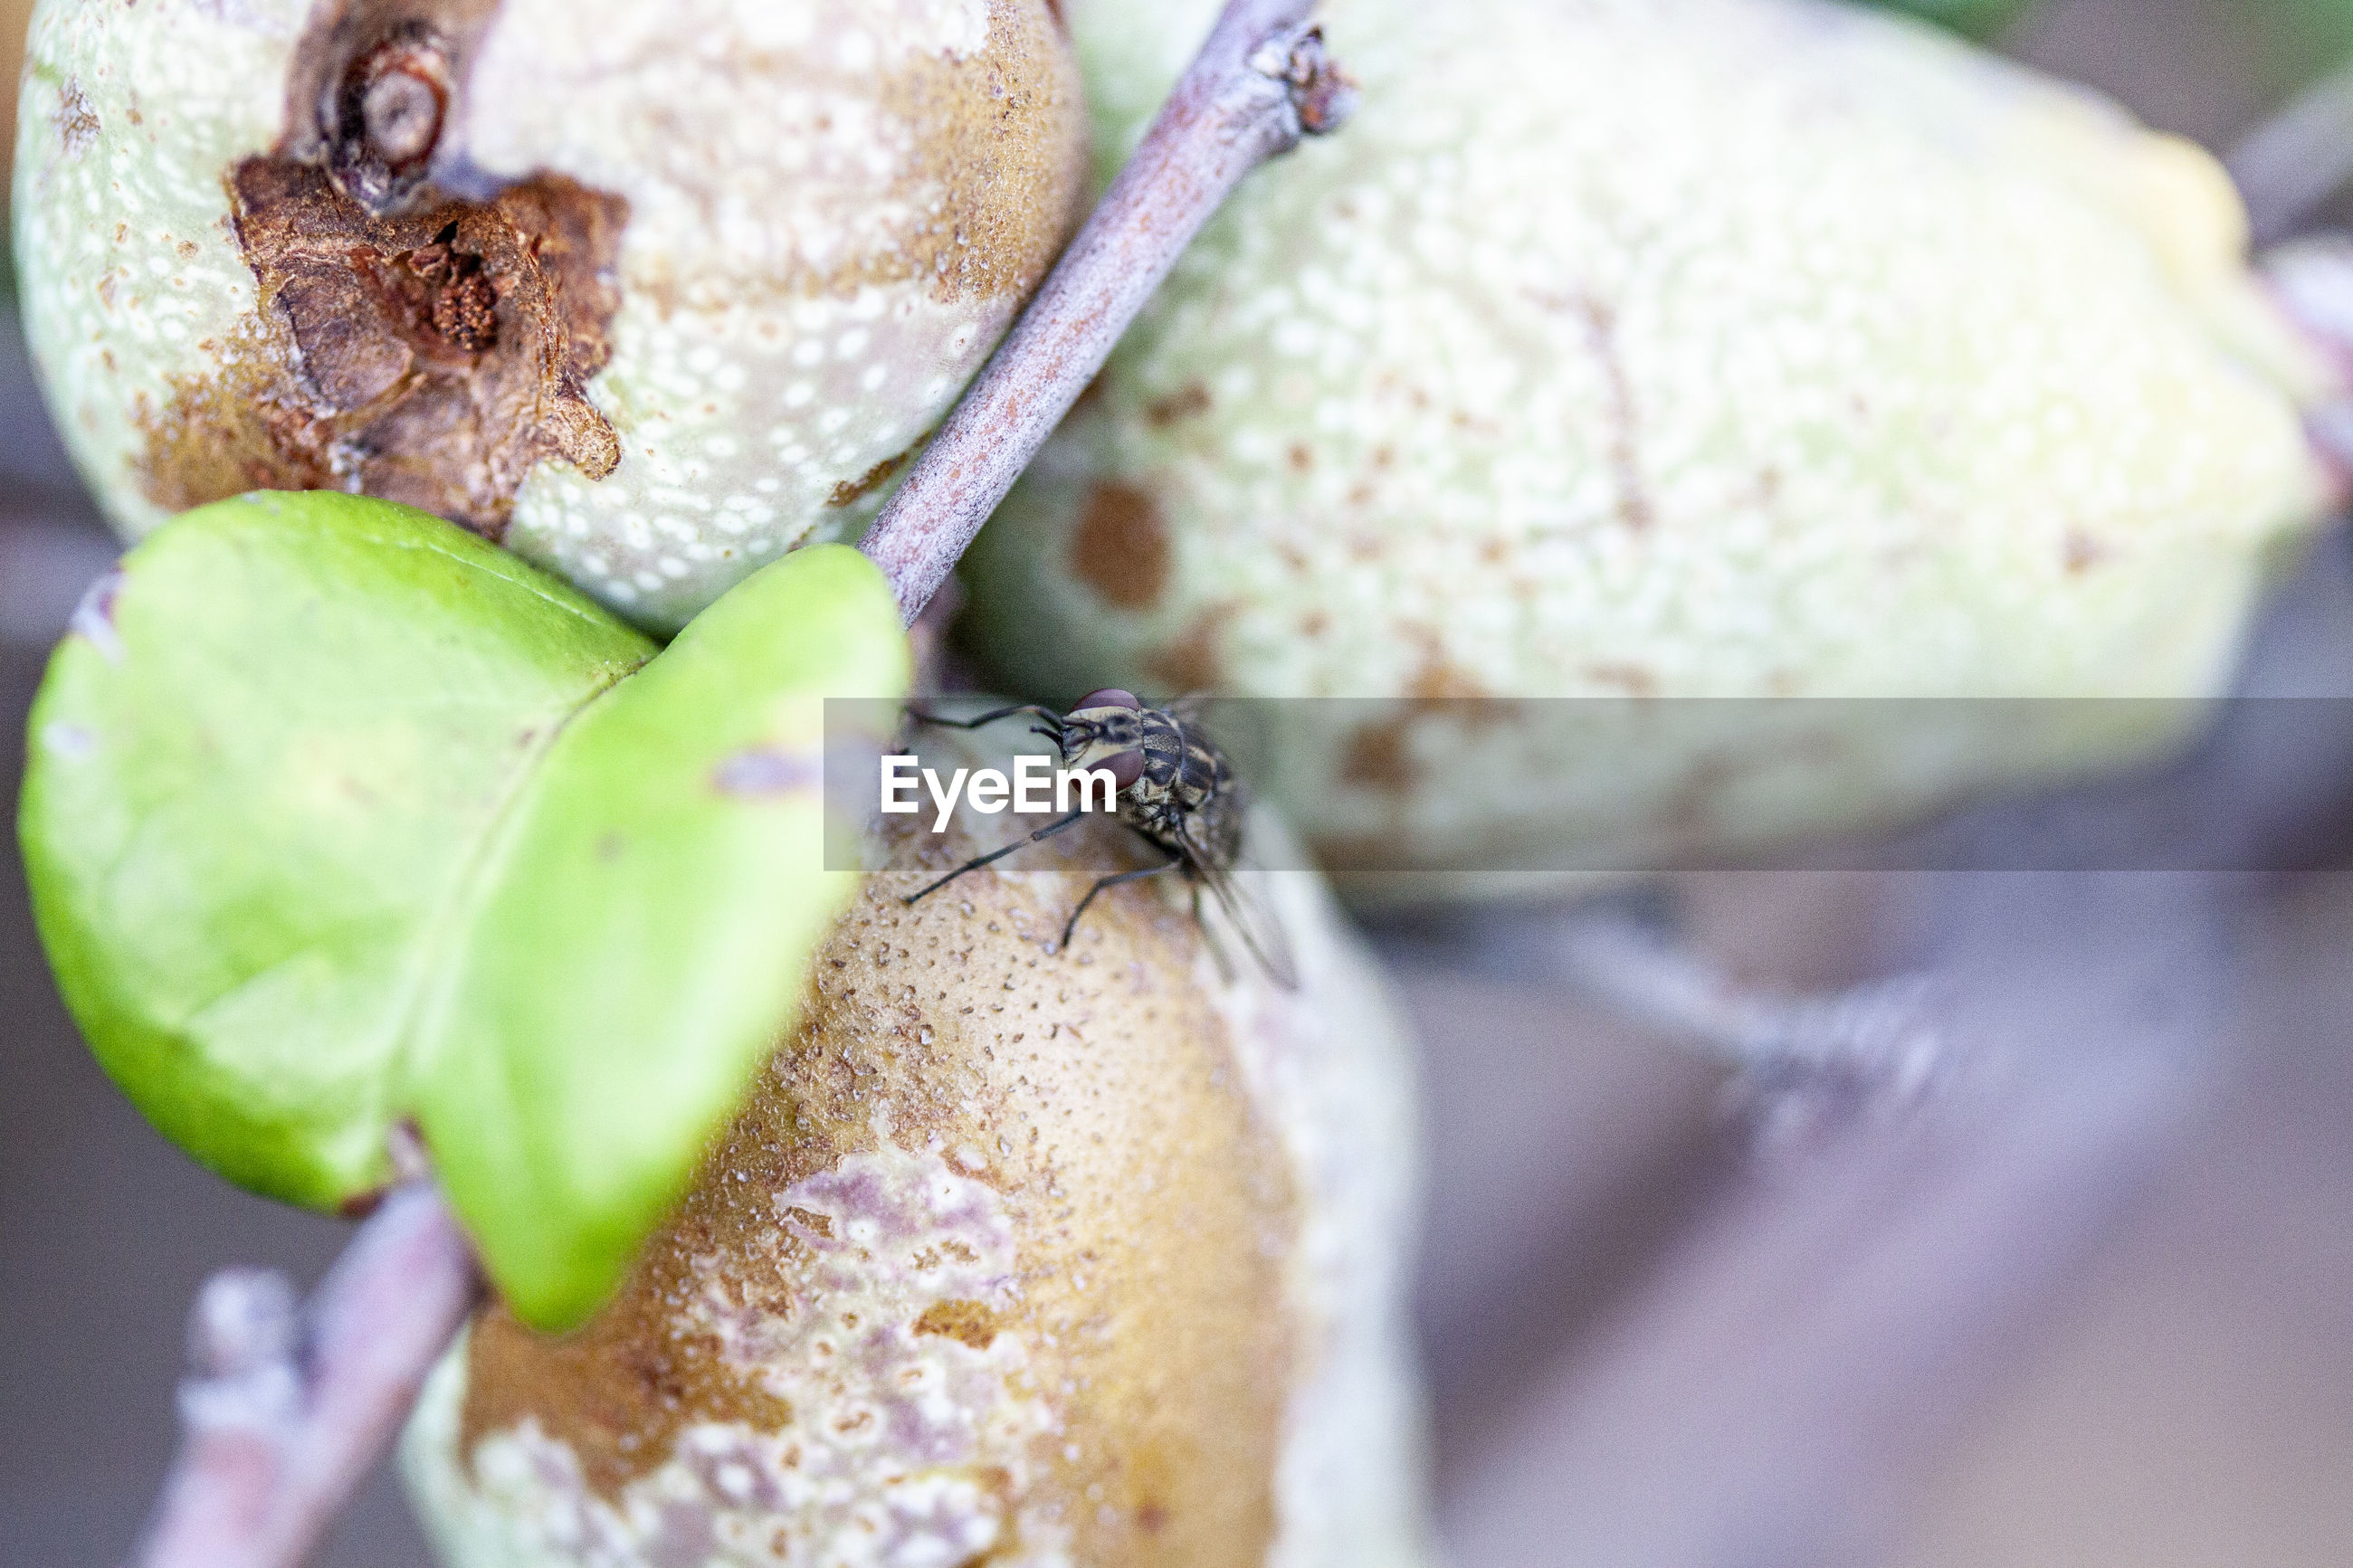 CLOSE-UP OF INSECT ON A FRUIT